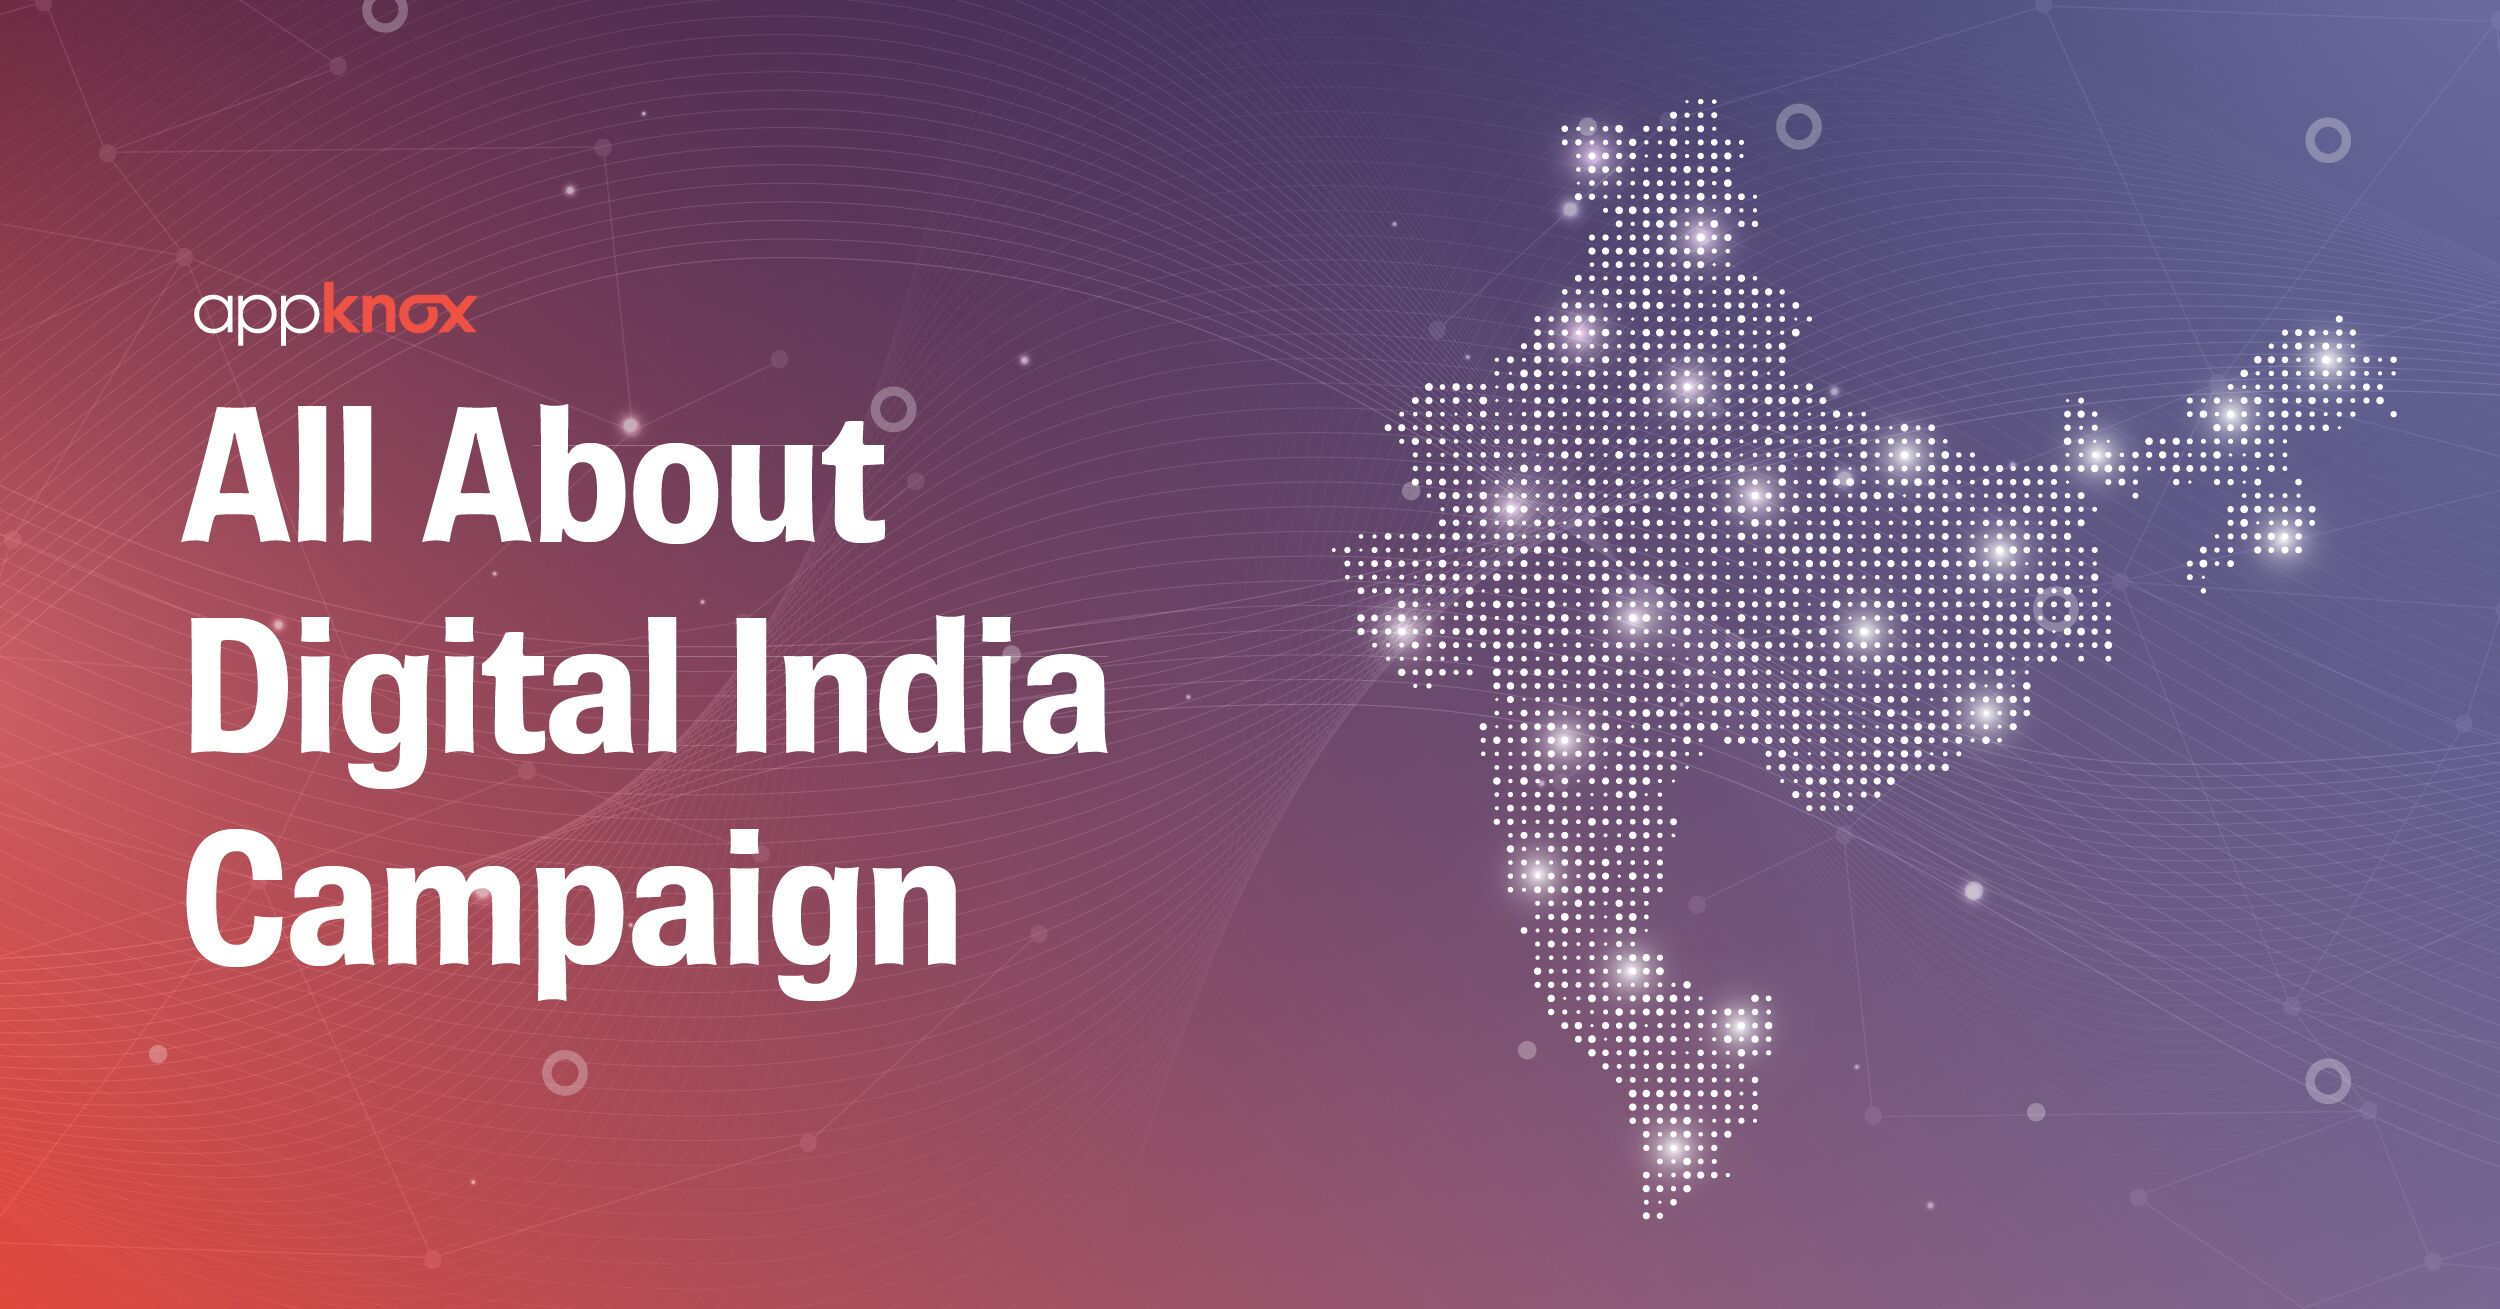 All about digital india campaign